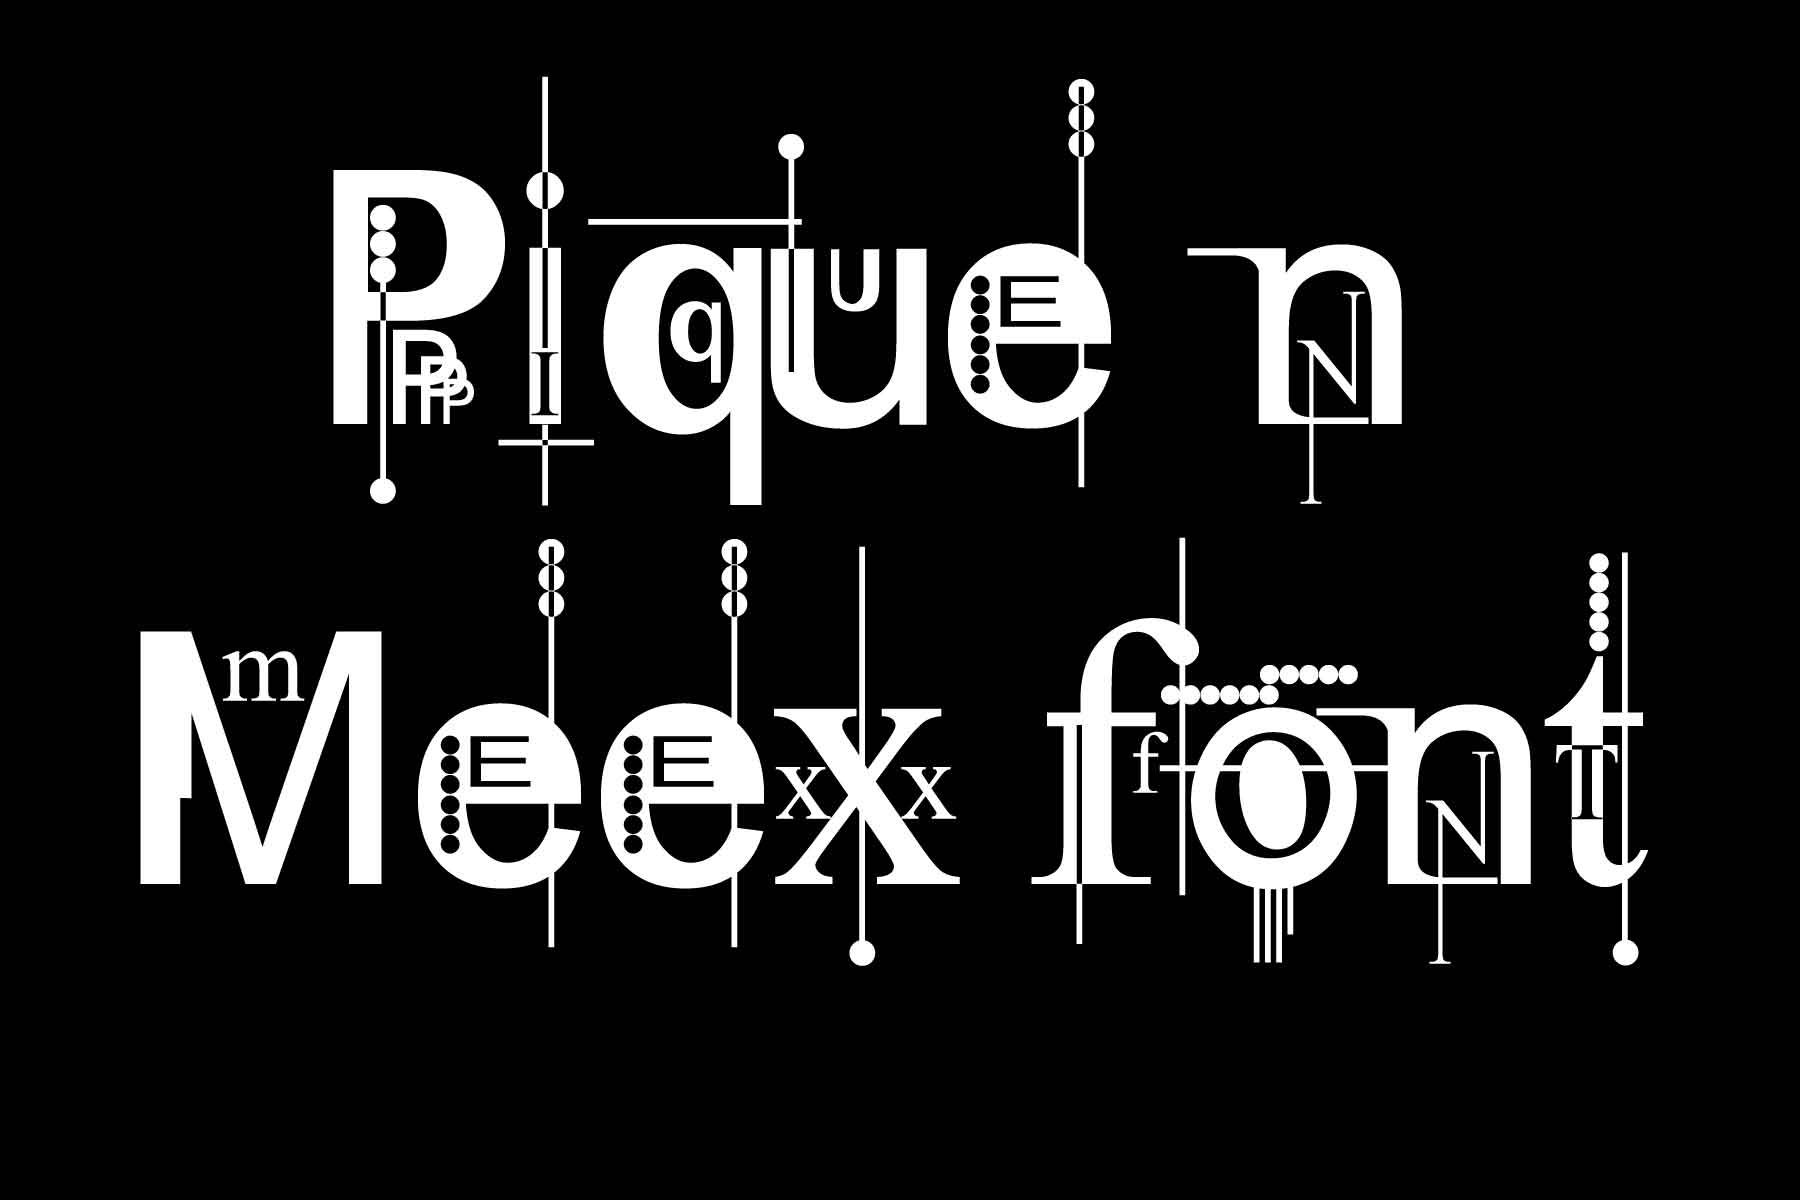 Today i decided to share some cool font s with you all from an